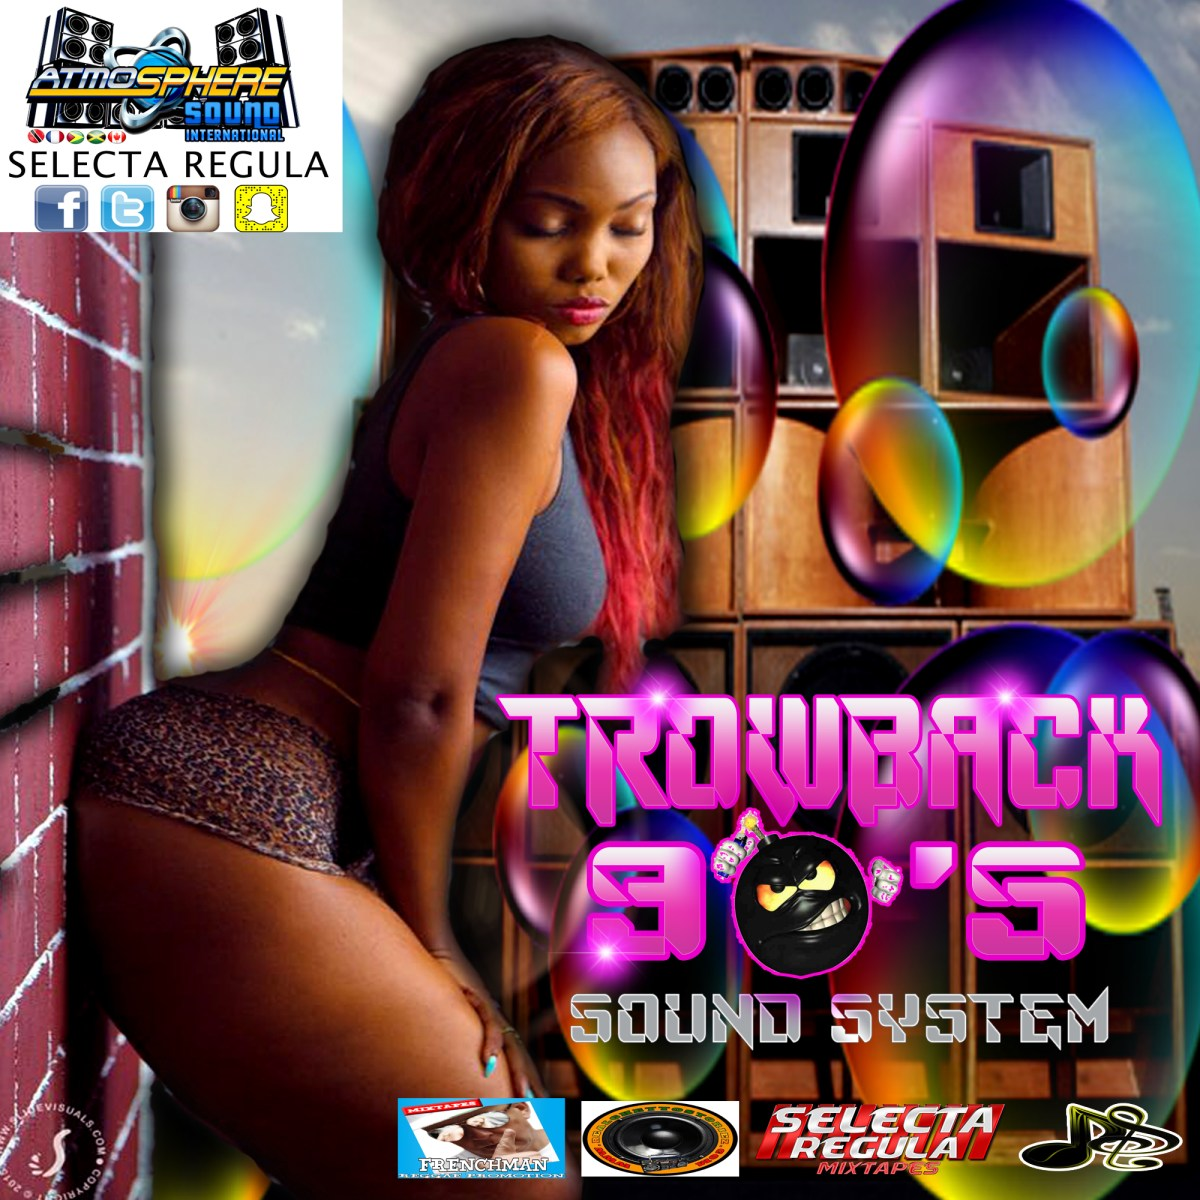 THROWBACK 90S SOUND SYSTEM MIX BY SELECTA REGULA